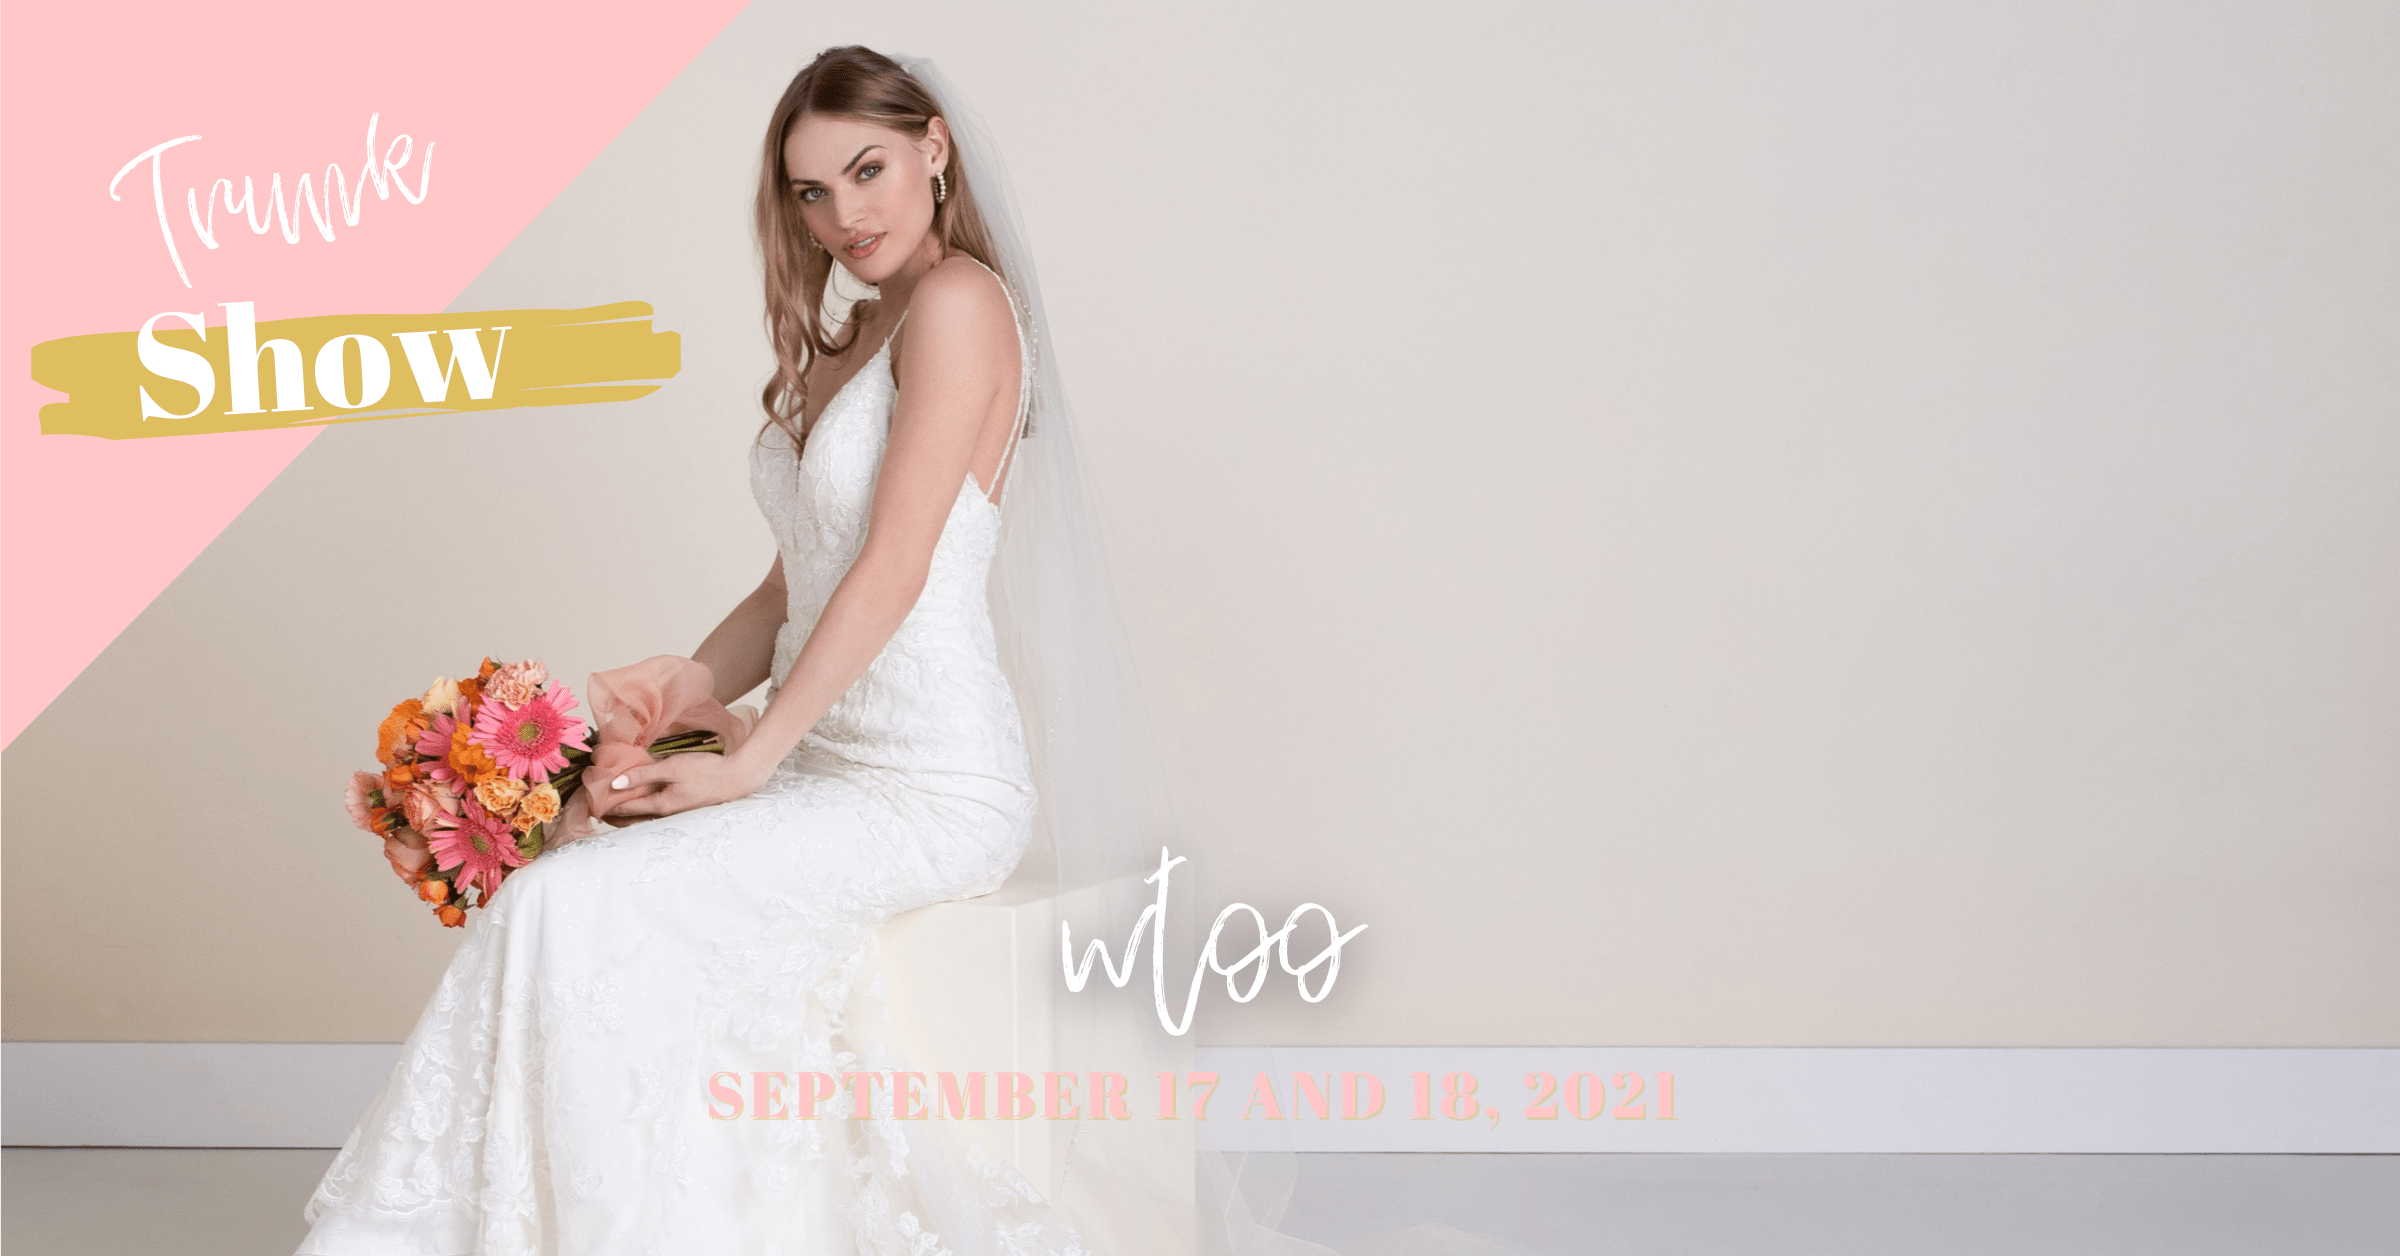 Wtoo September 17th and 18th, 2021 (By Watters)